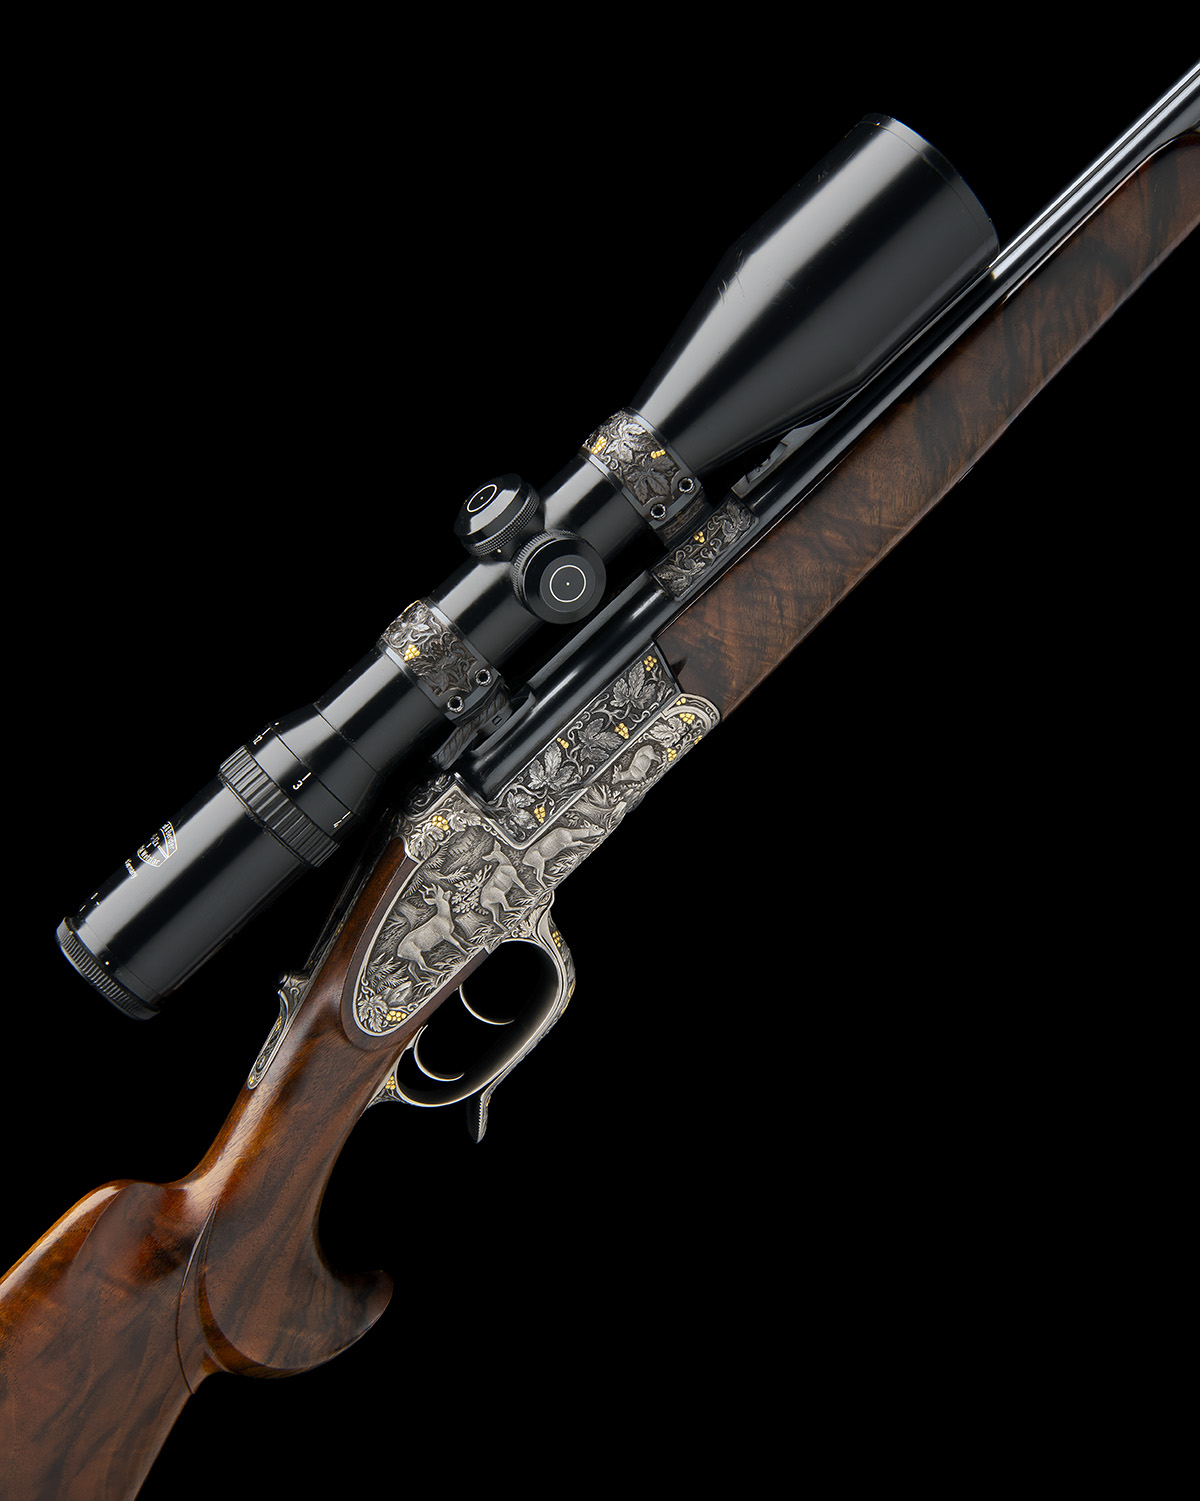 H. SCHEIRING AN 8X57RS / 5.6X50R MAG. JAEGER PATENT SIDEPLATED OVER AND UNDER PUSH-FORWARD